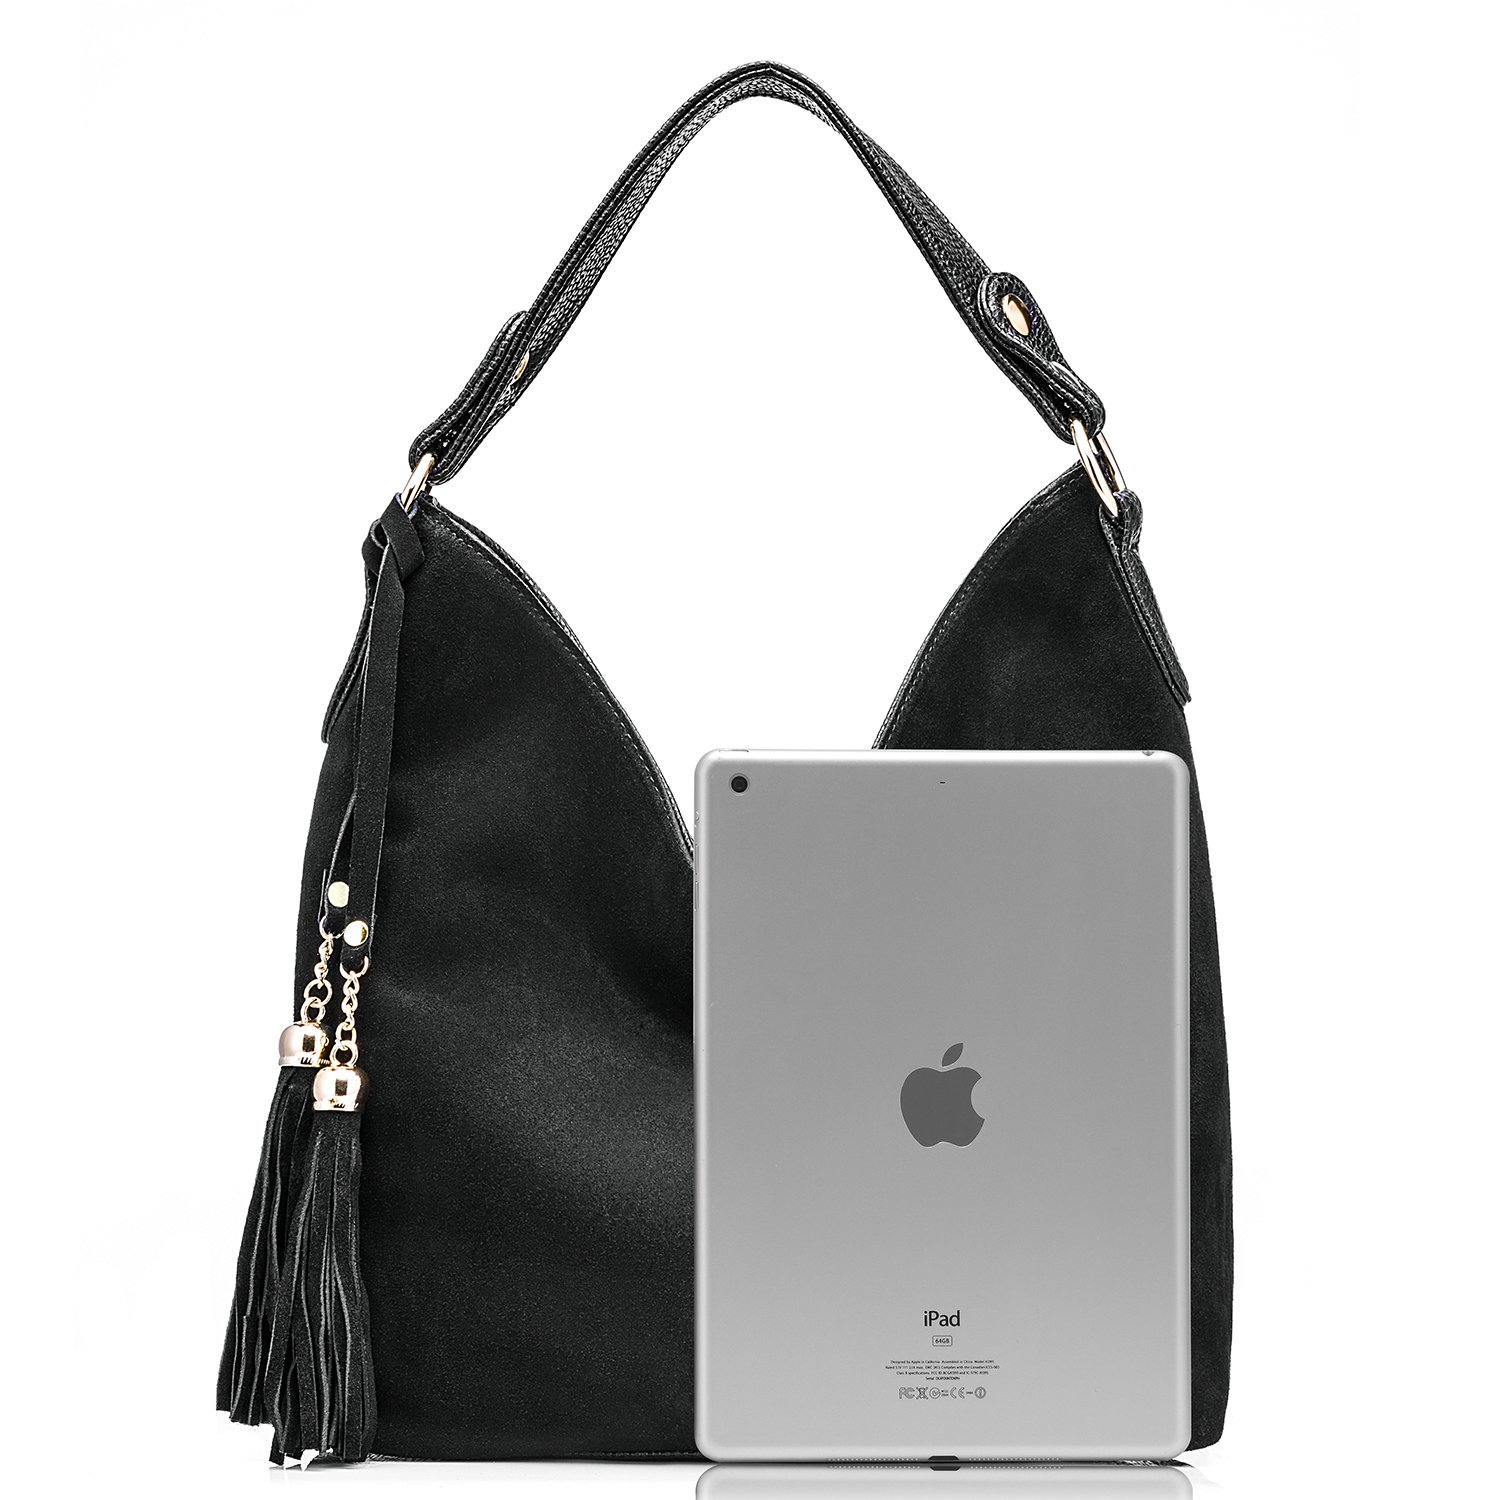 c5c04cf39b Realer Hobo Bag for Women Tote Leather Purse Crossbody Bag Large (Black)   Amazon.com.au  Fashion